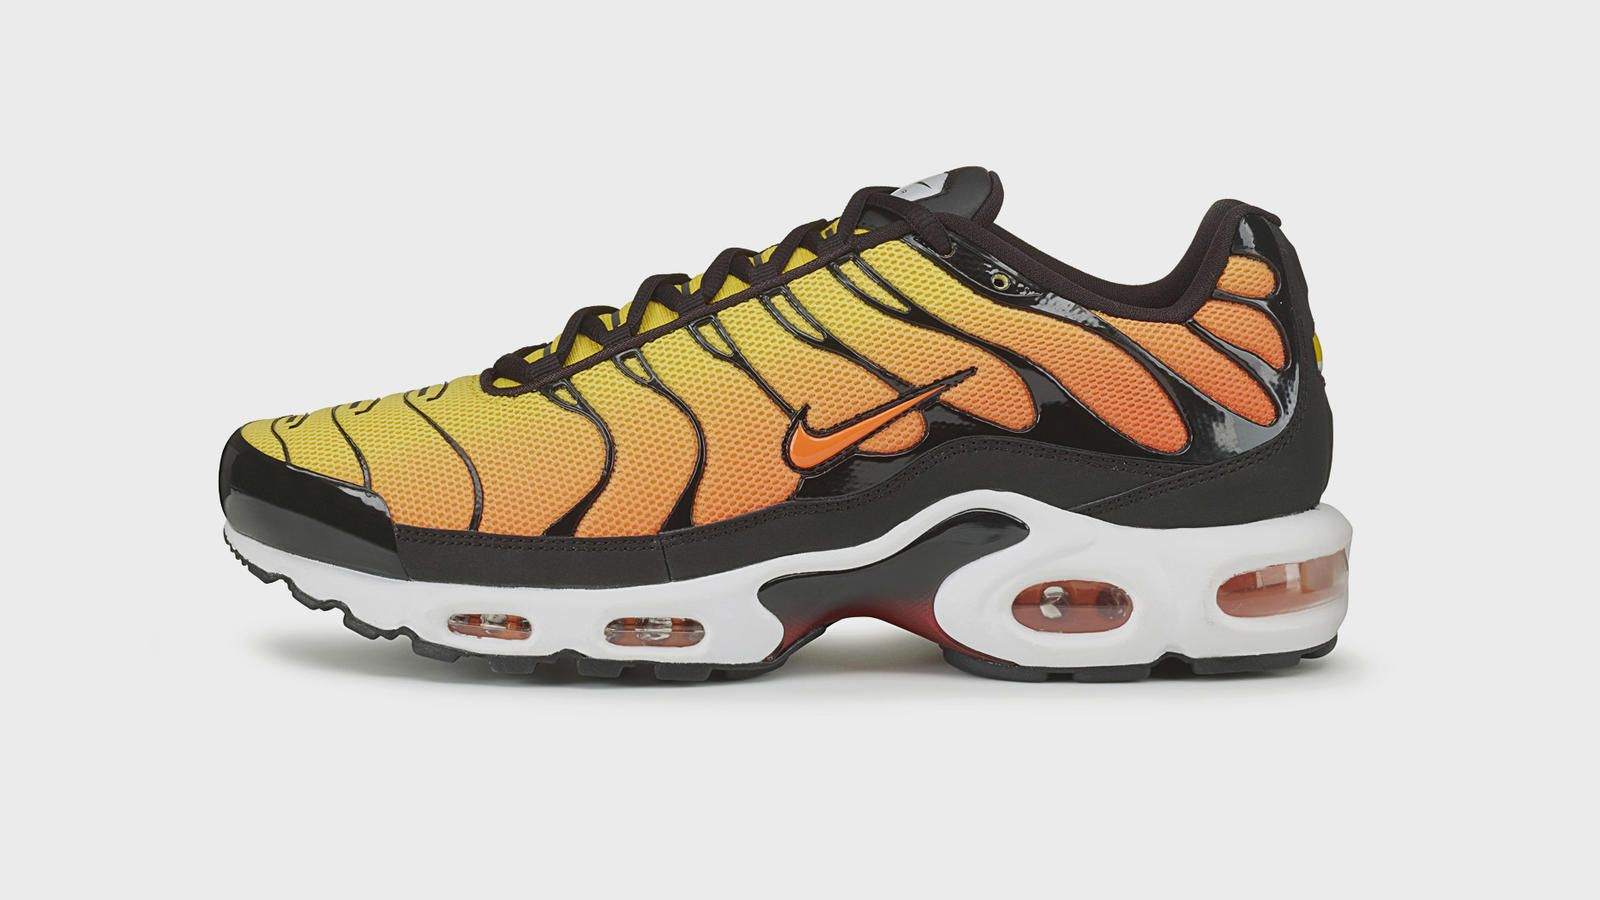 d51fc98b3819 The Untold Story of the Nike Air Max Plus - Nike News